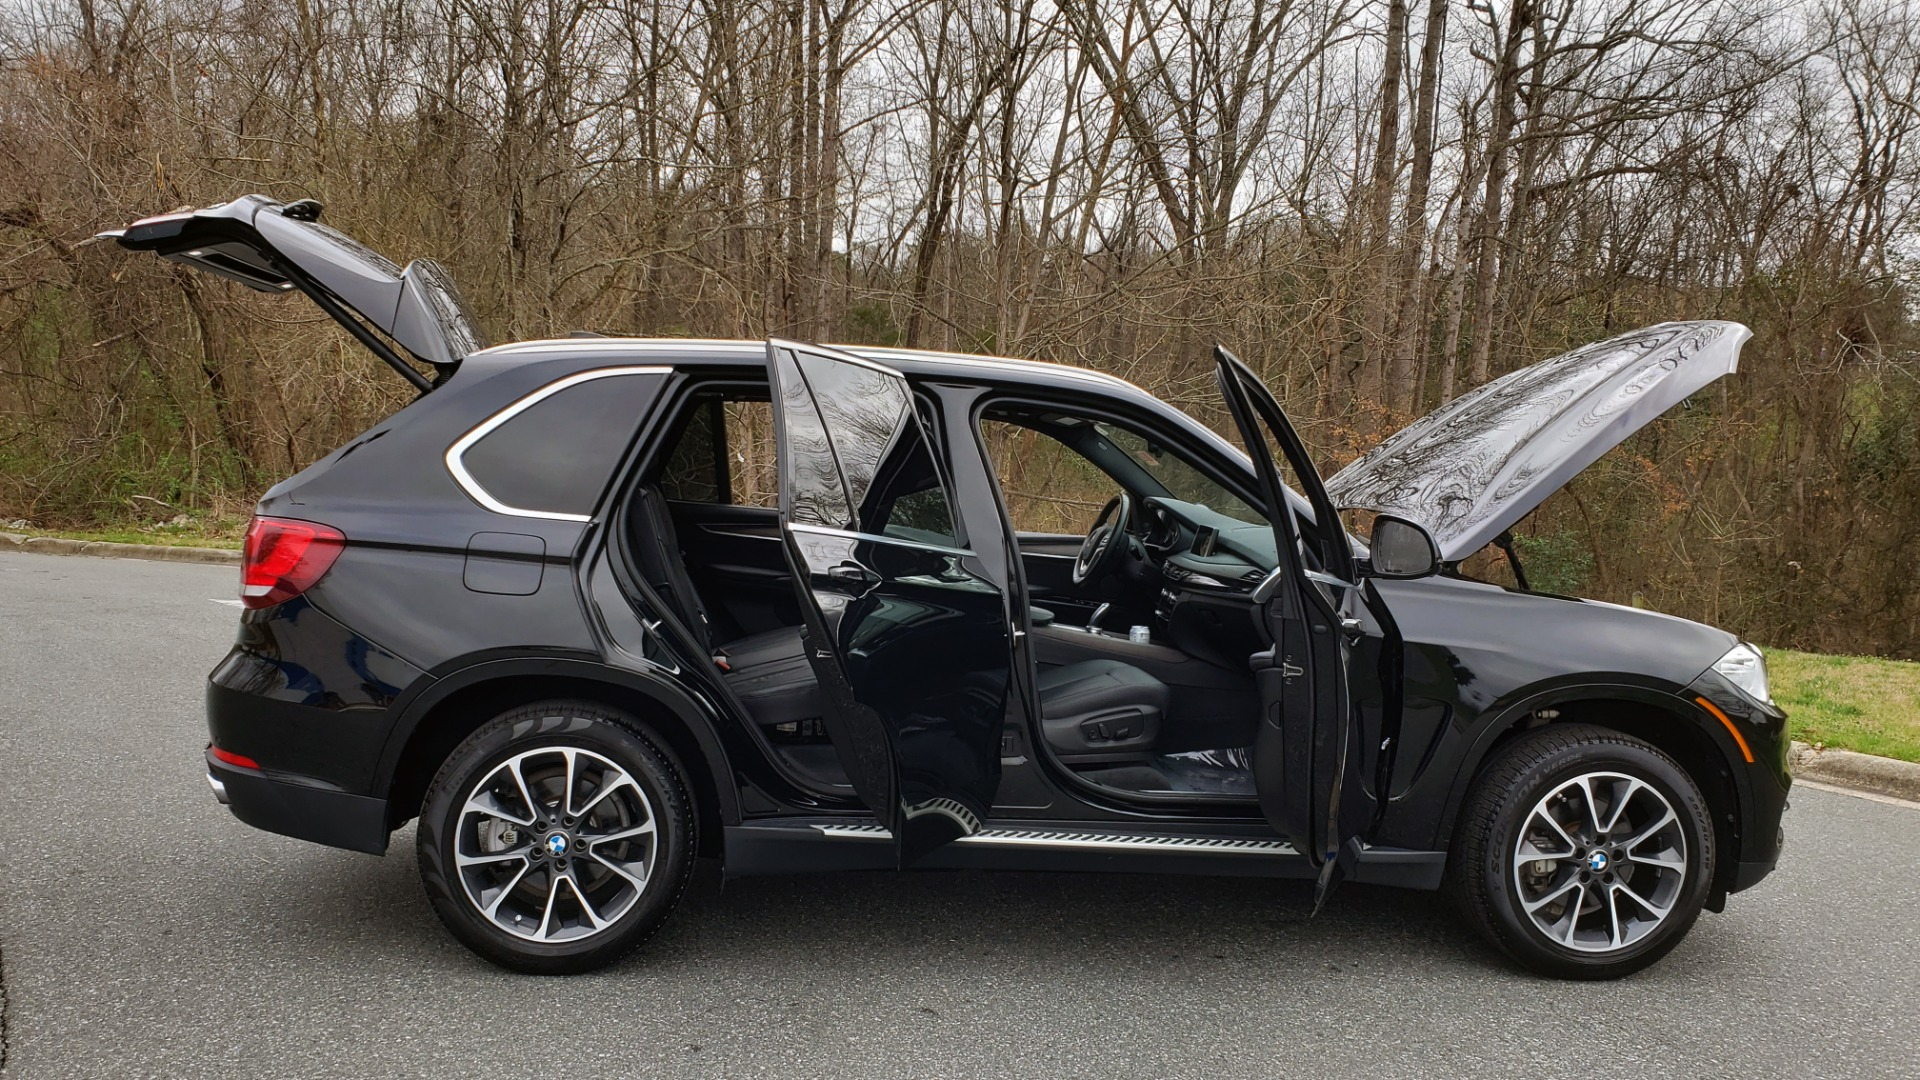 Used 2017 BMW X5 XDRIVE35I / PREM LUX PKG / DRVR ASST / CLD WTHR / APPLE CAR PLAY for sale Sold at Formula Imports in Charlotte NC 28227 10